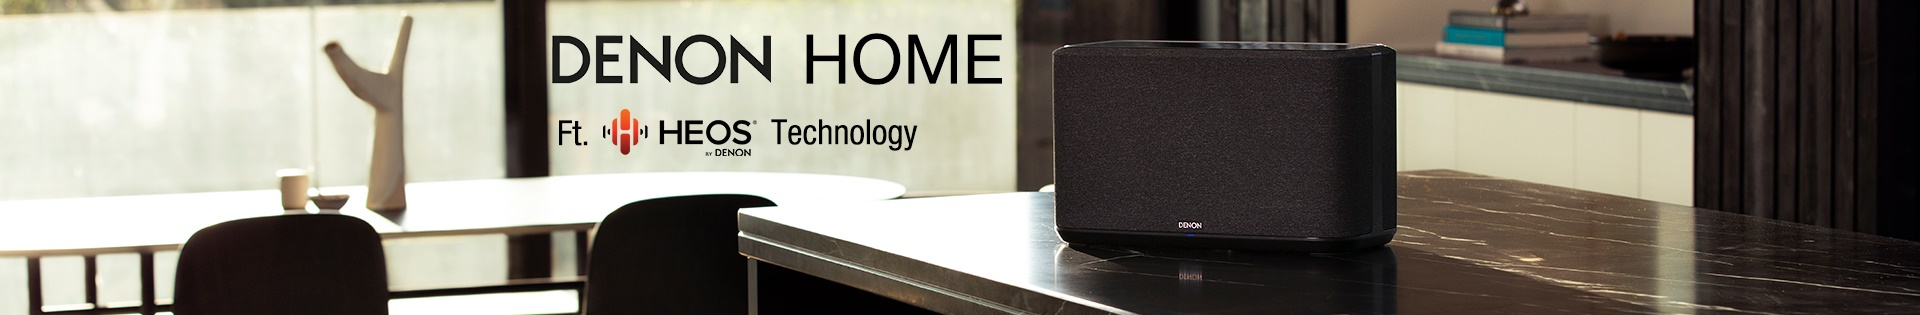 New Denon Home